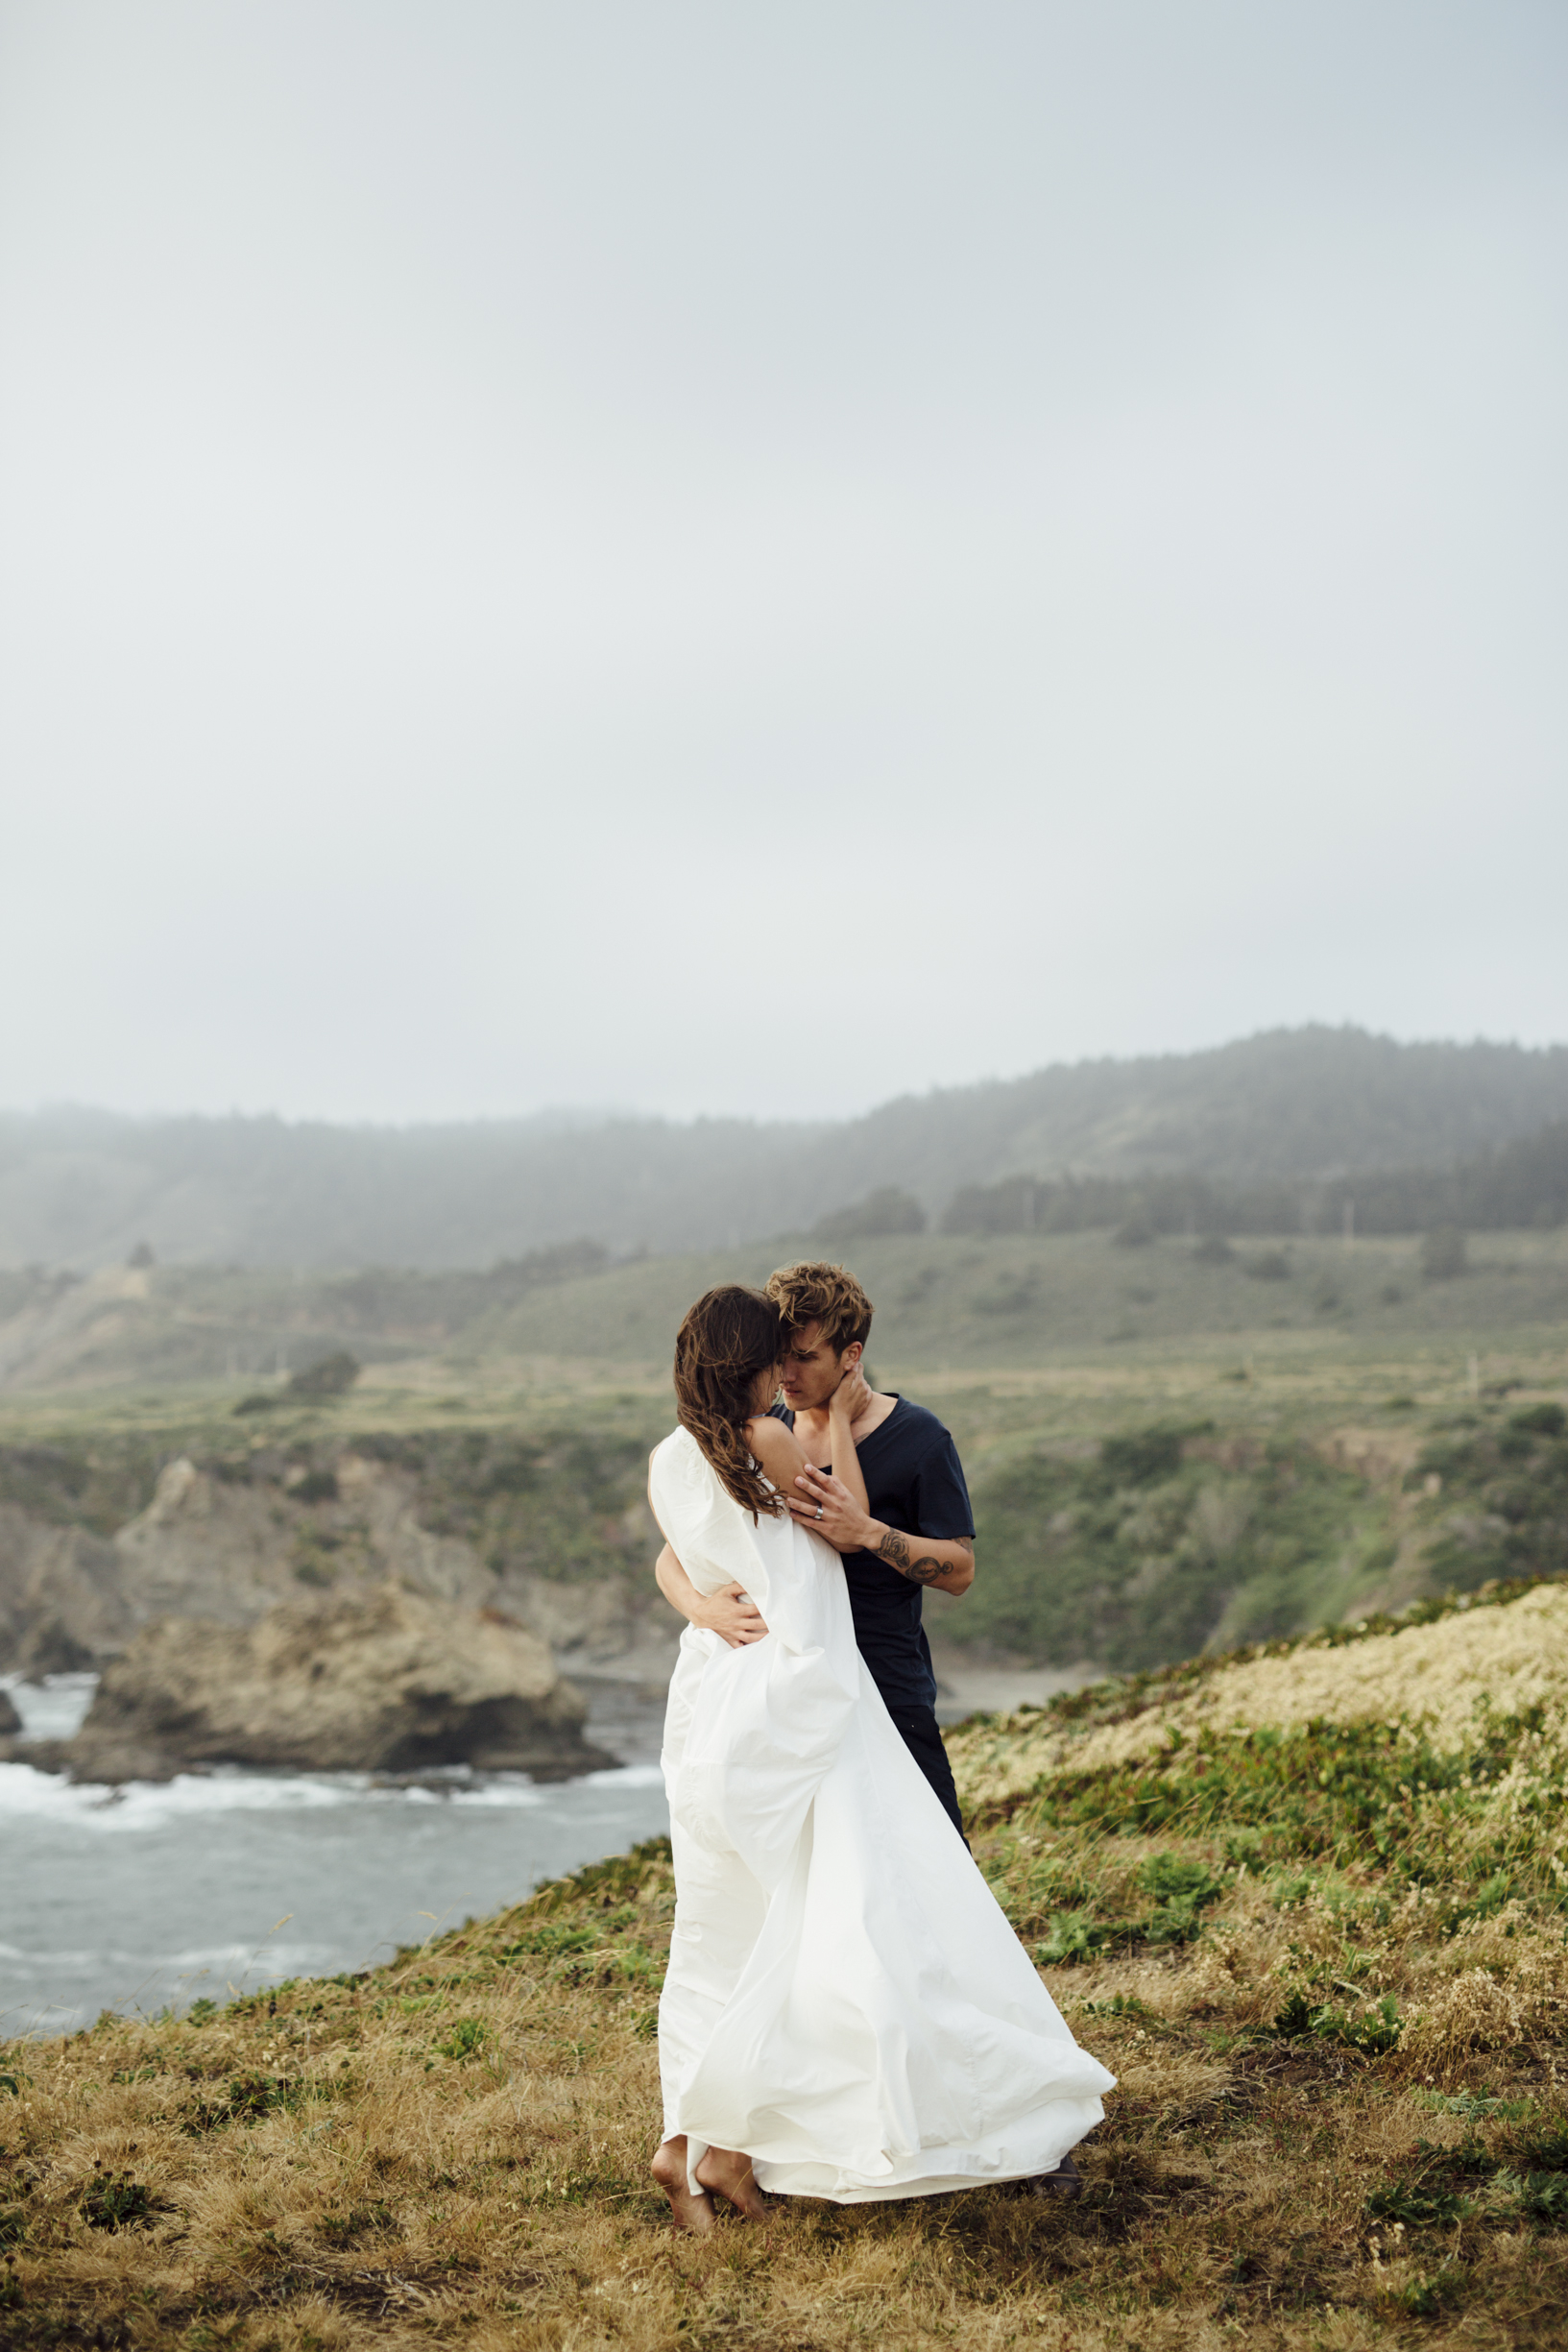 California-Wedding-Photography-by-Artur-Zaitsev-24